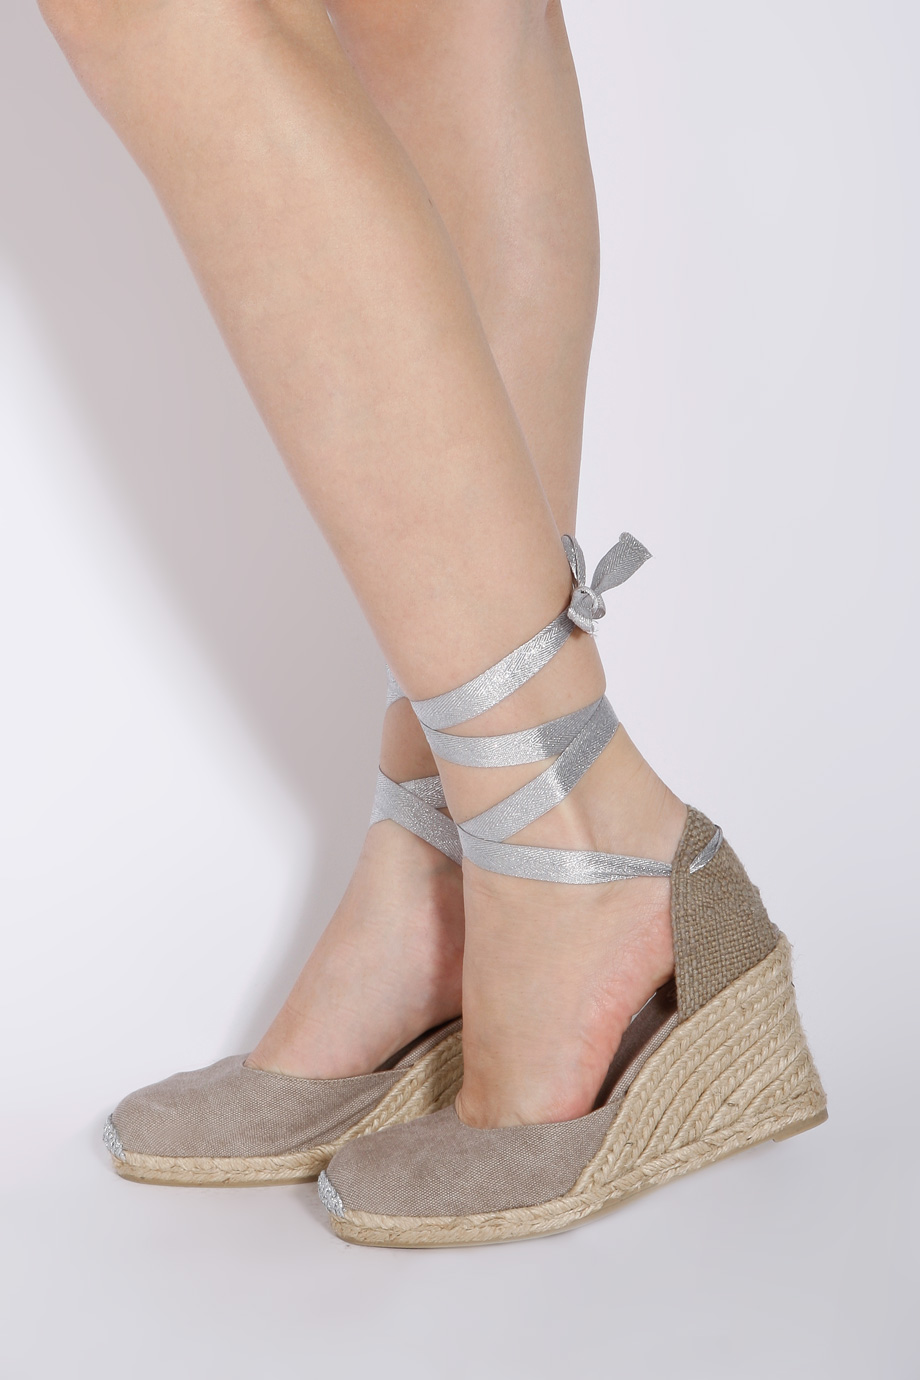 0d8e723ebdd5 Ankle Tie Wedges - Tie Photo and Image Reagan21.Org